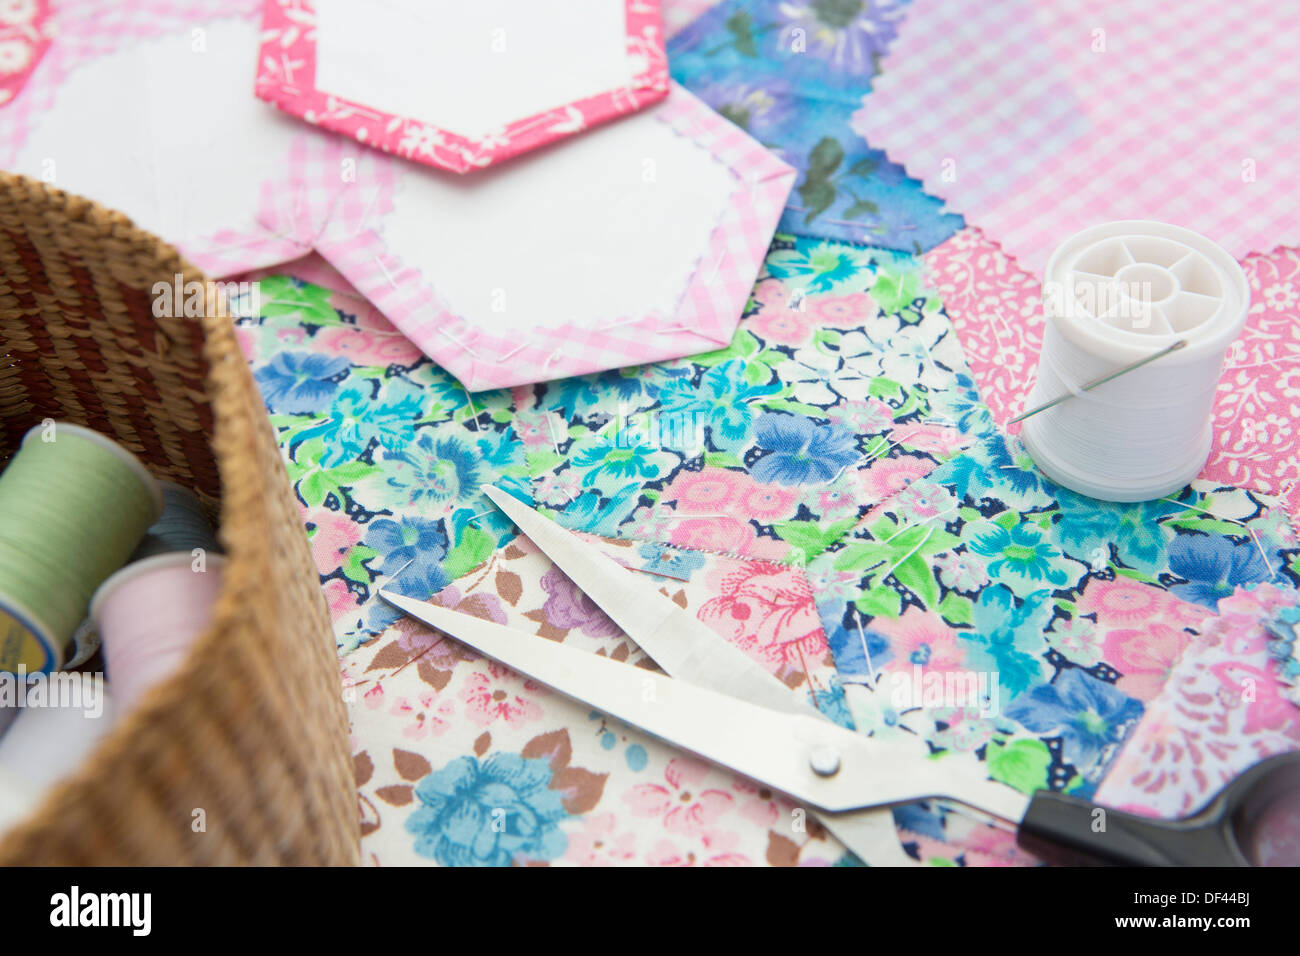 Still Life Of Quilt Making Fabric And Tools - Stock Image